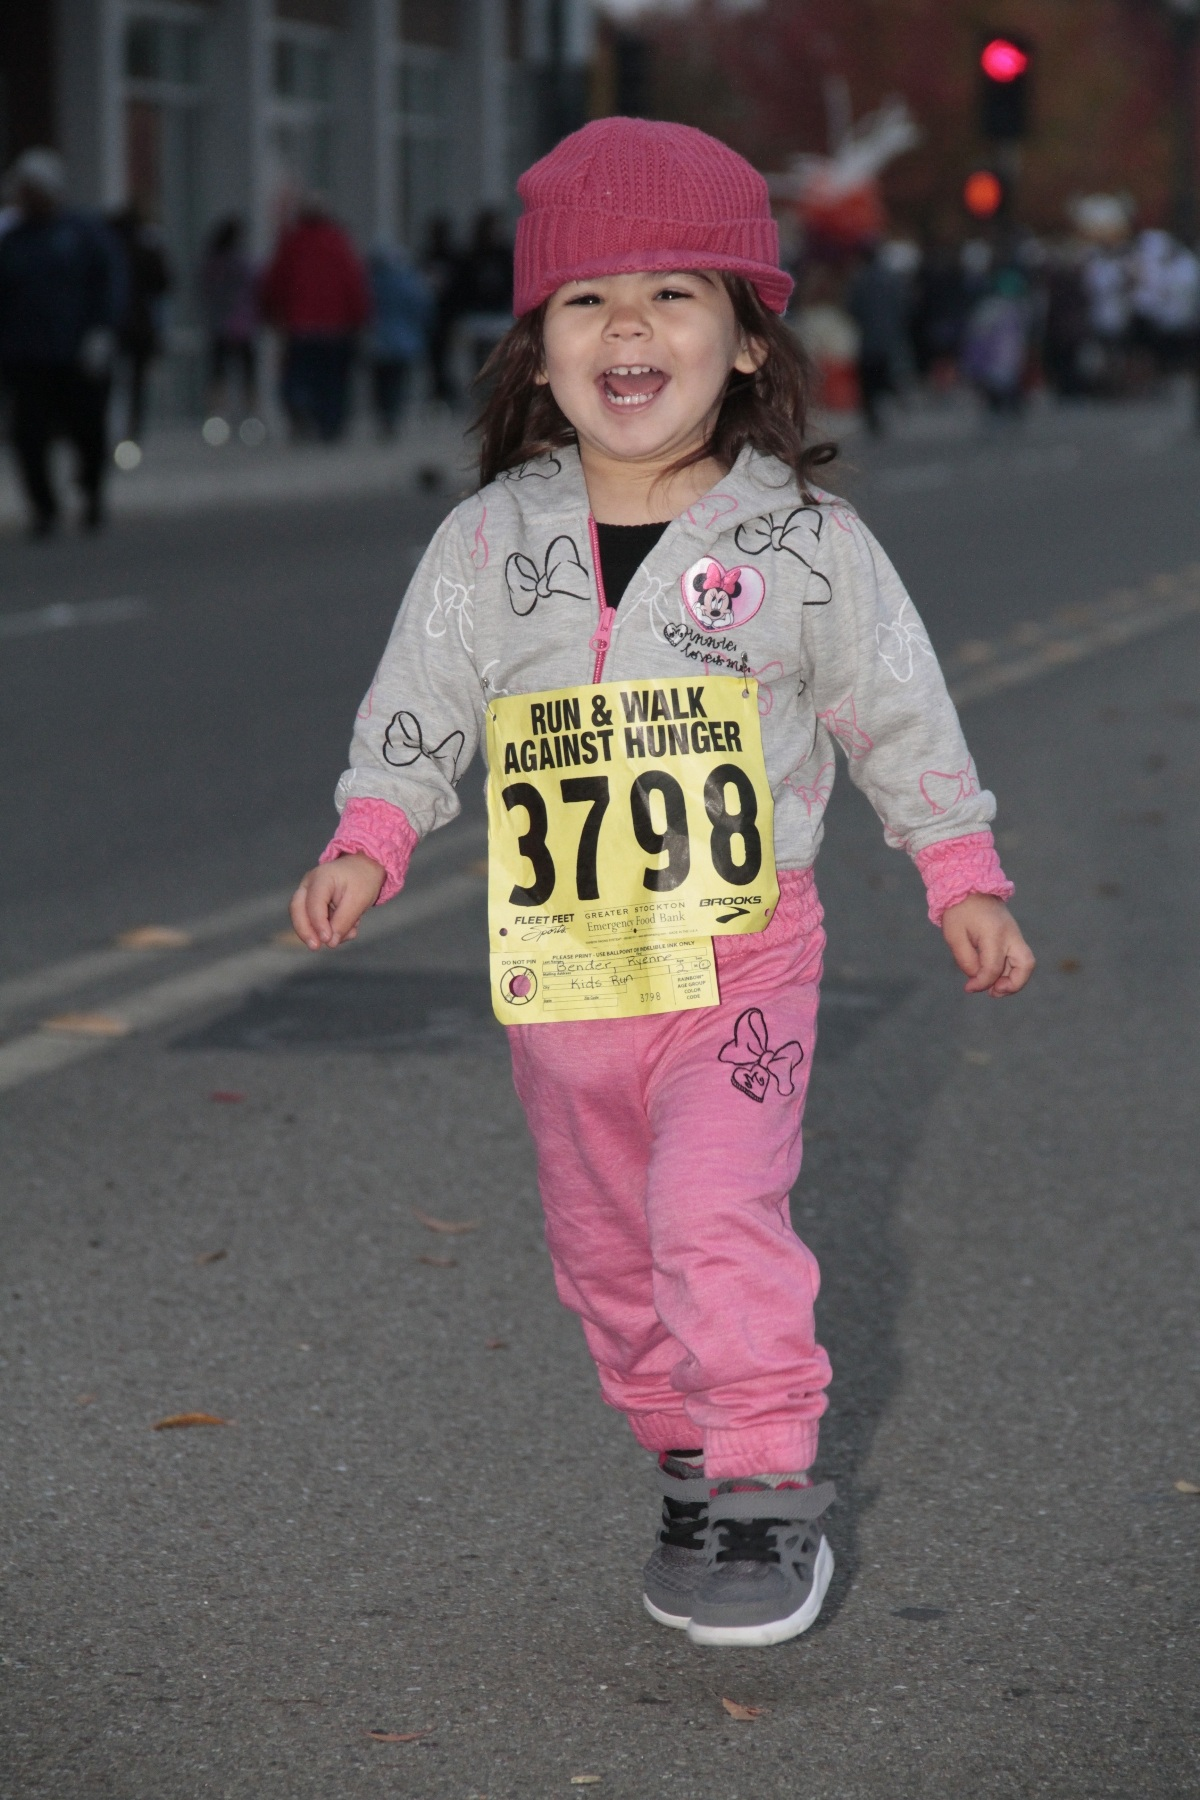 What a cutie!  start them running young!